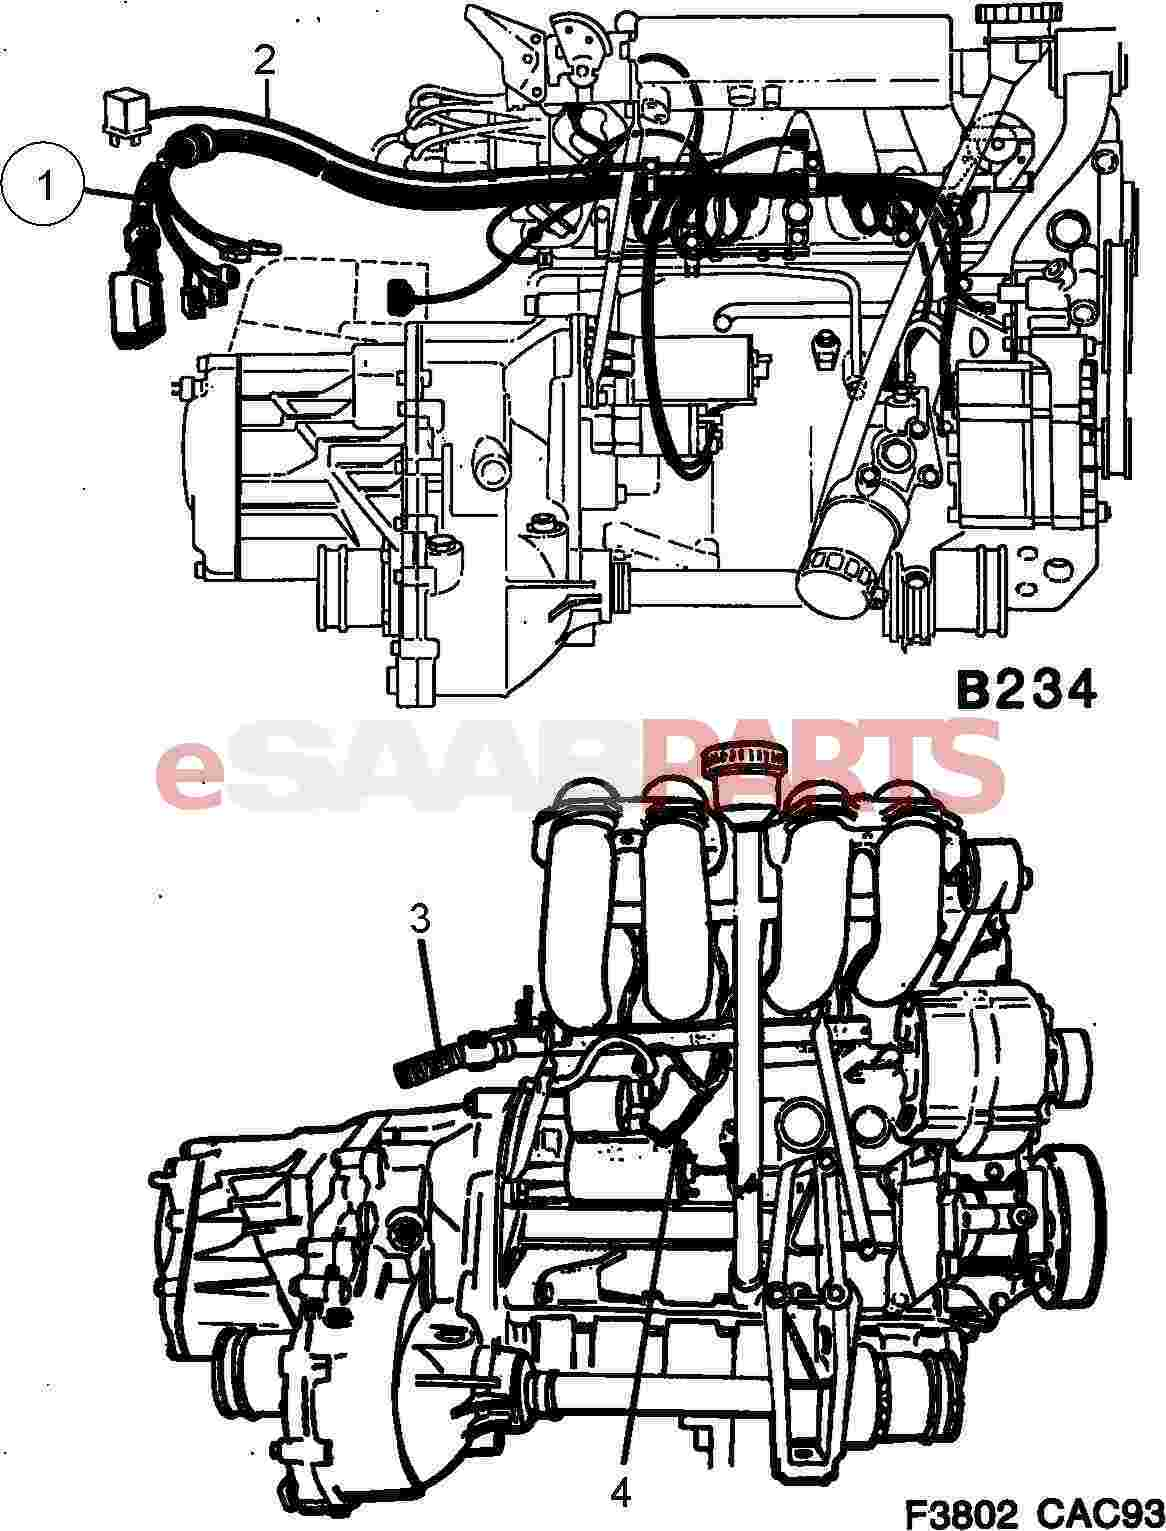 saab engine bay diagram